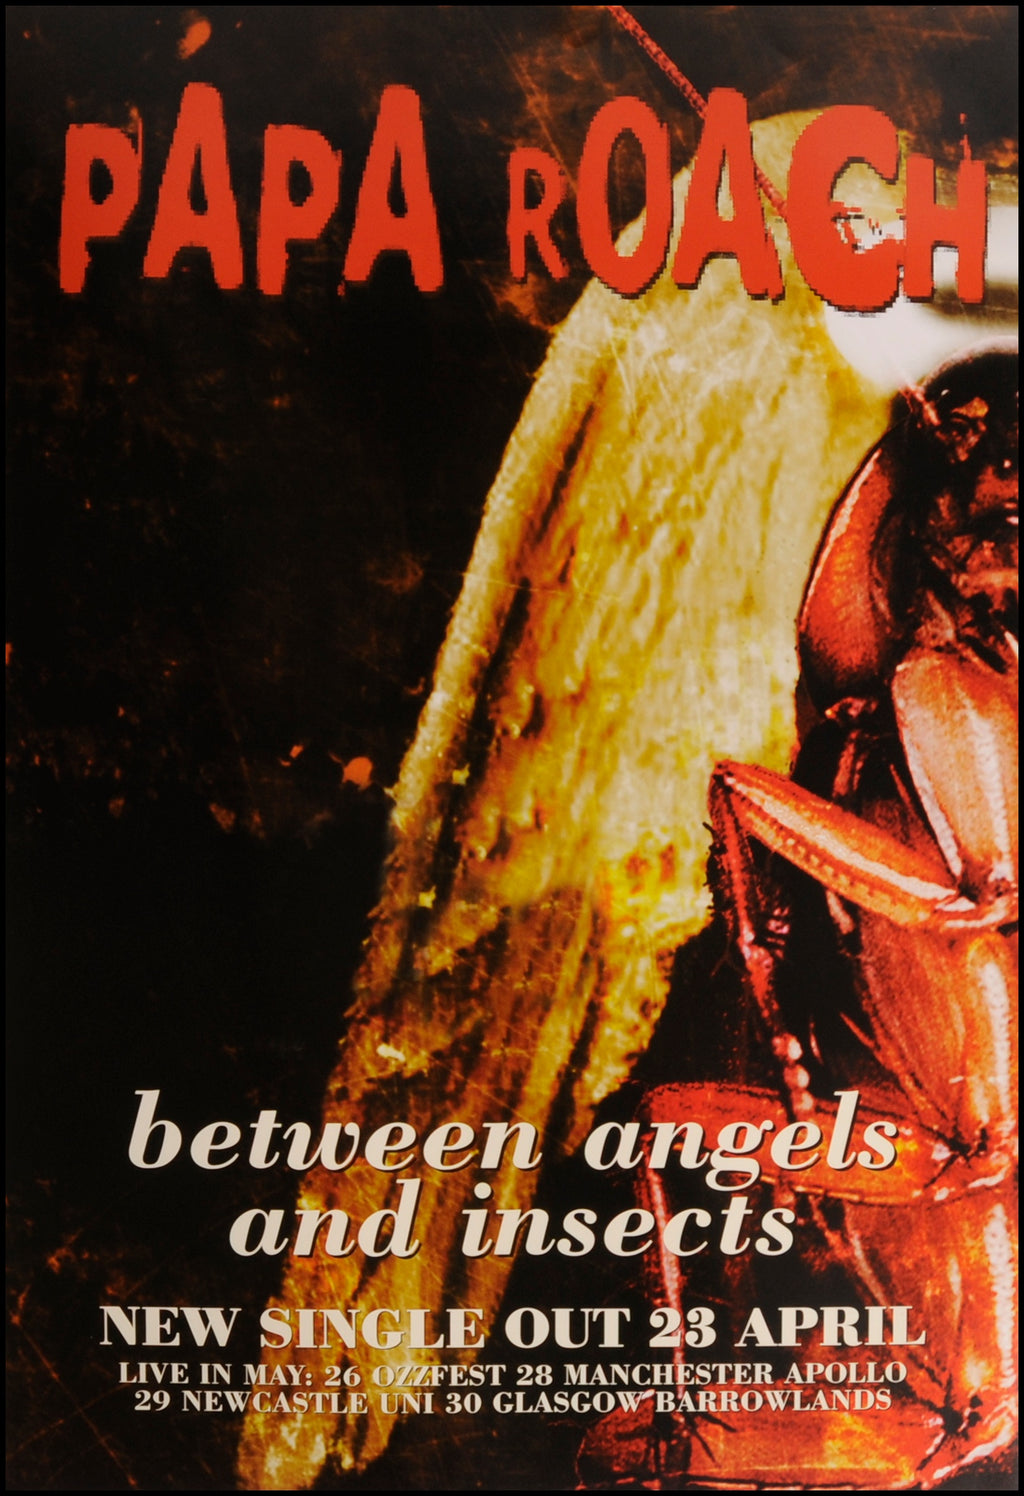 Papa Roach poster - Between angels and insects